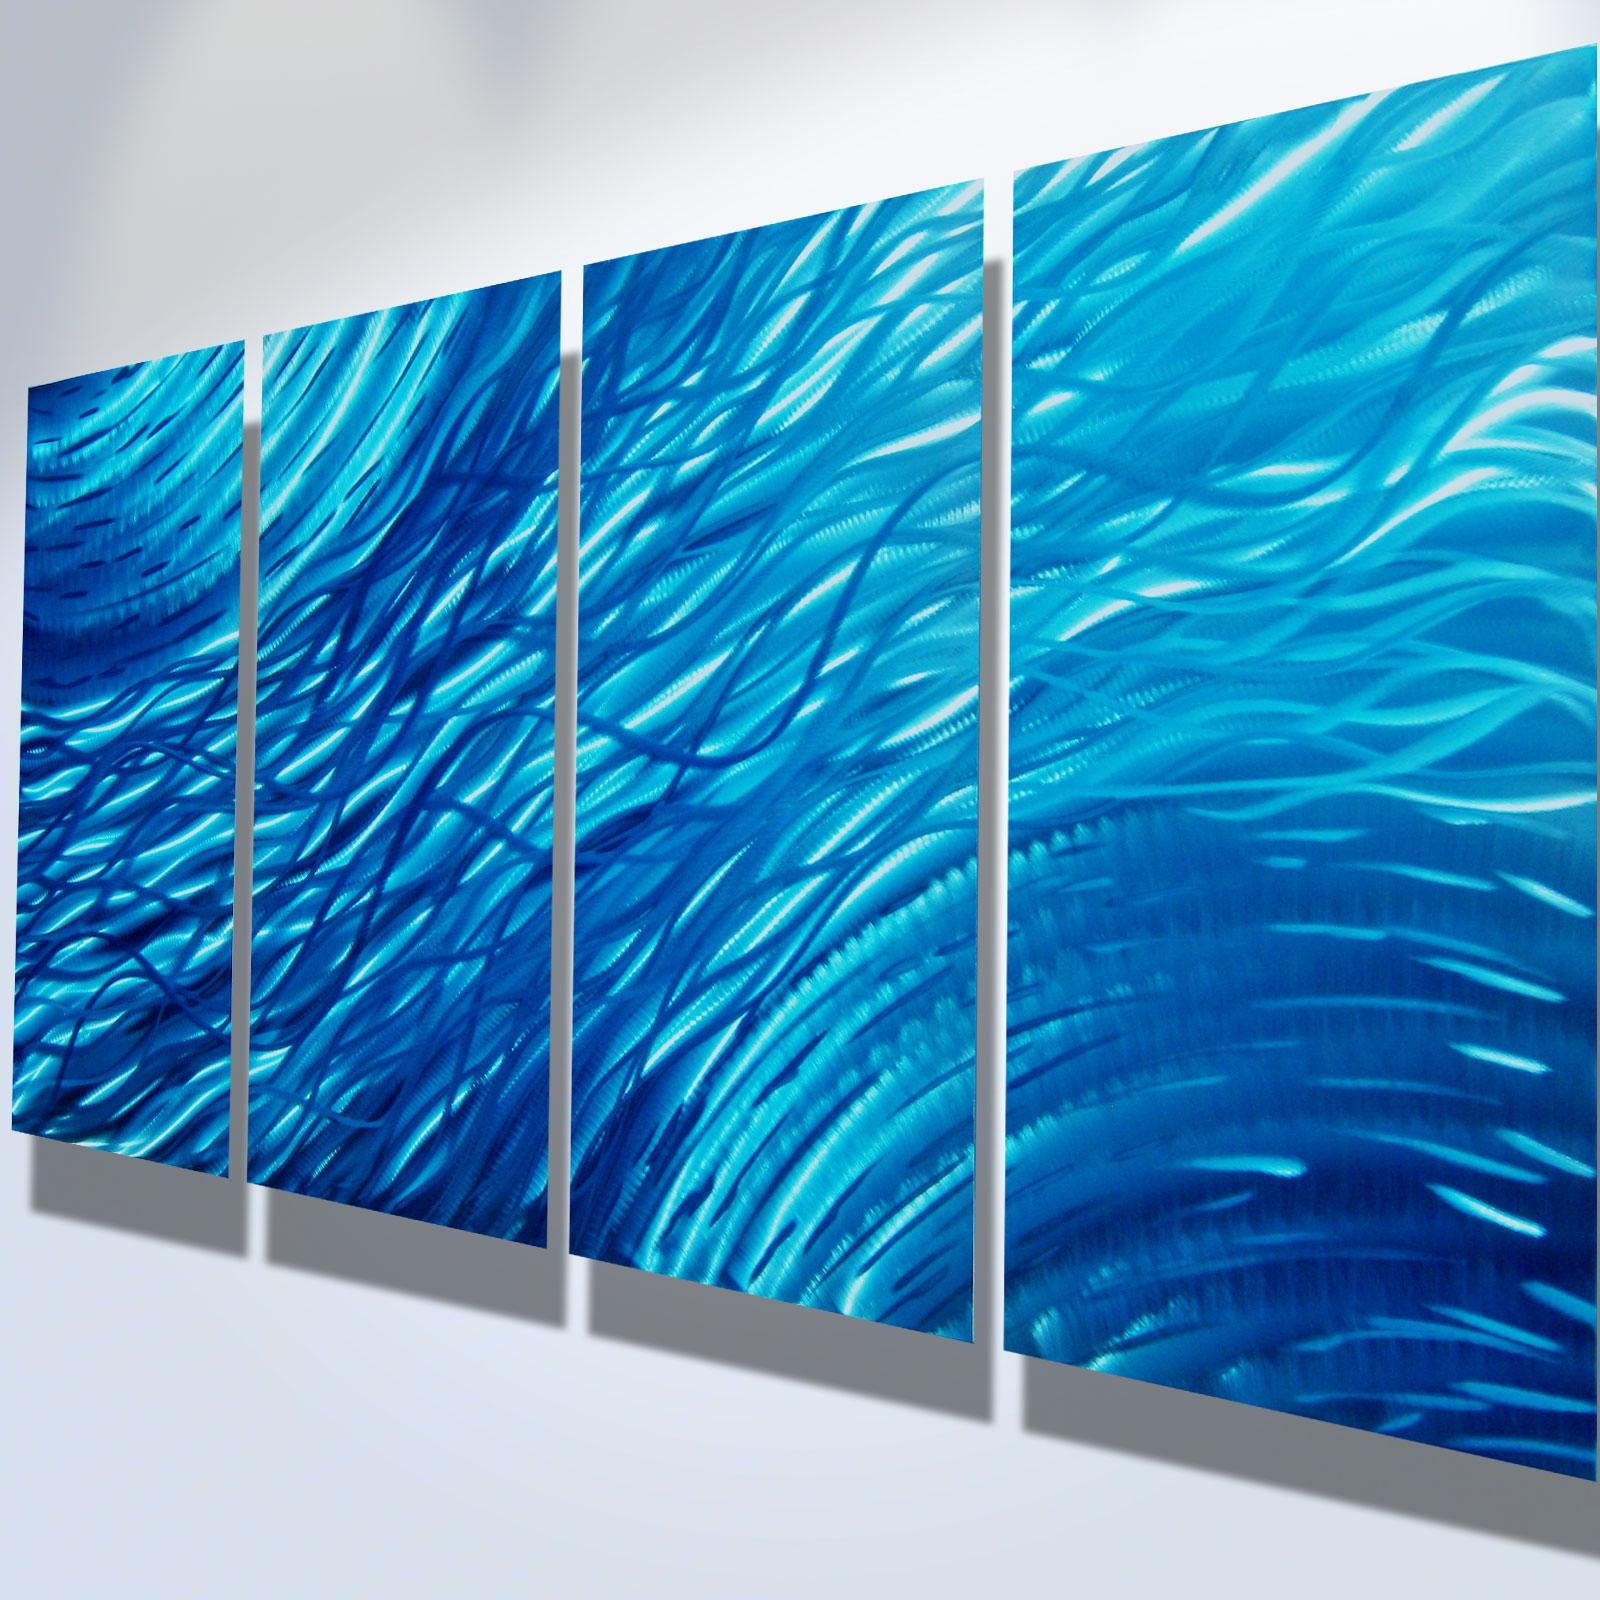 Ocean  Metal Wall Art Abstract Contemporary Modern Decor Throughout Teal Metal Wall Art (Image 8 of 20)